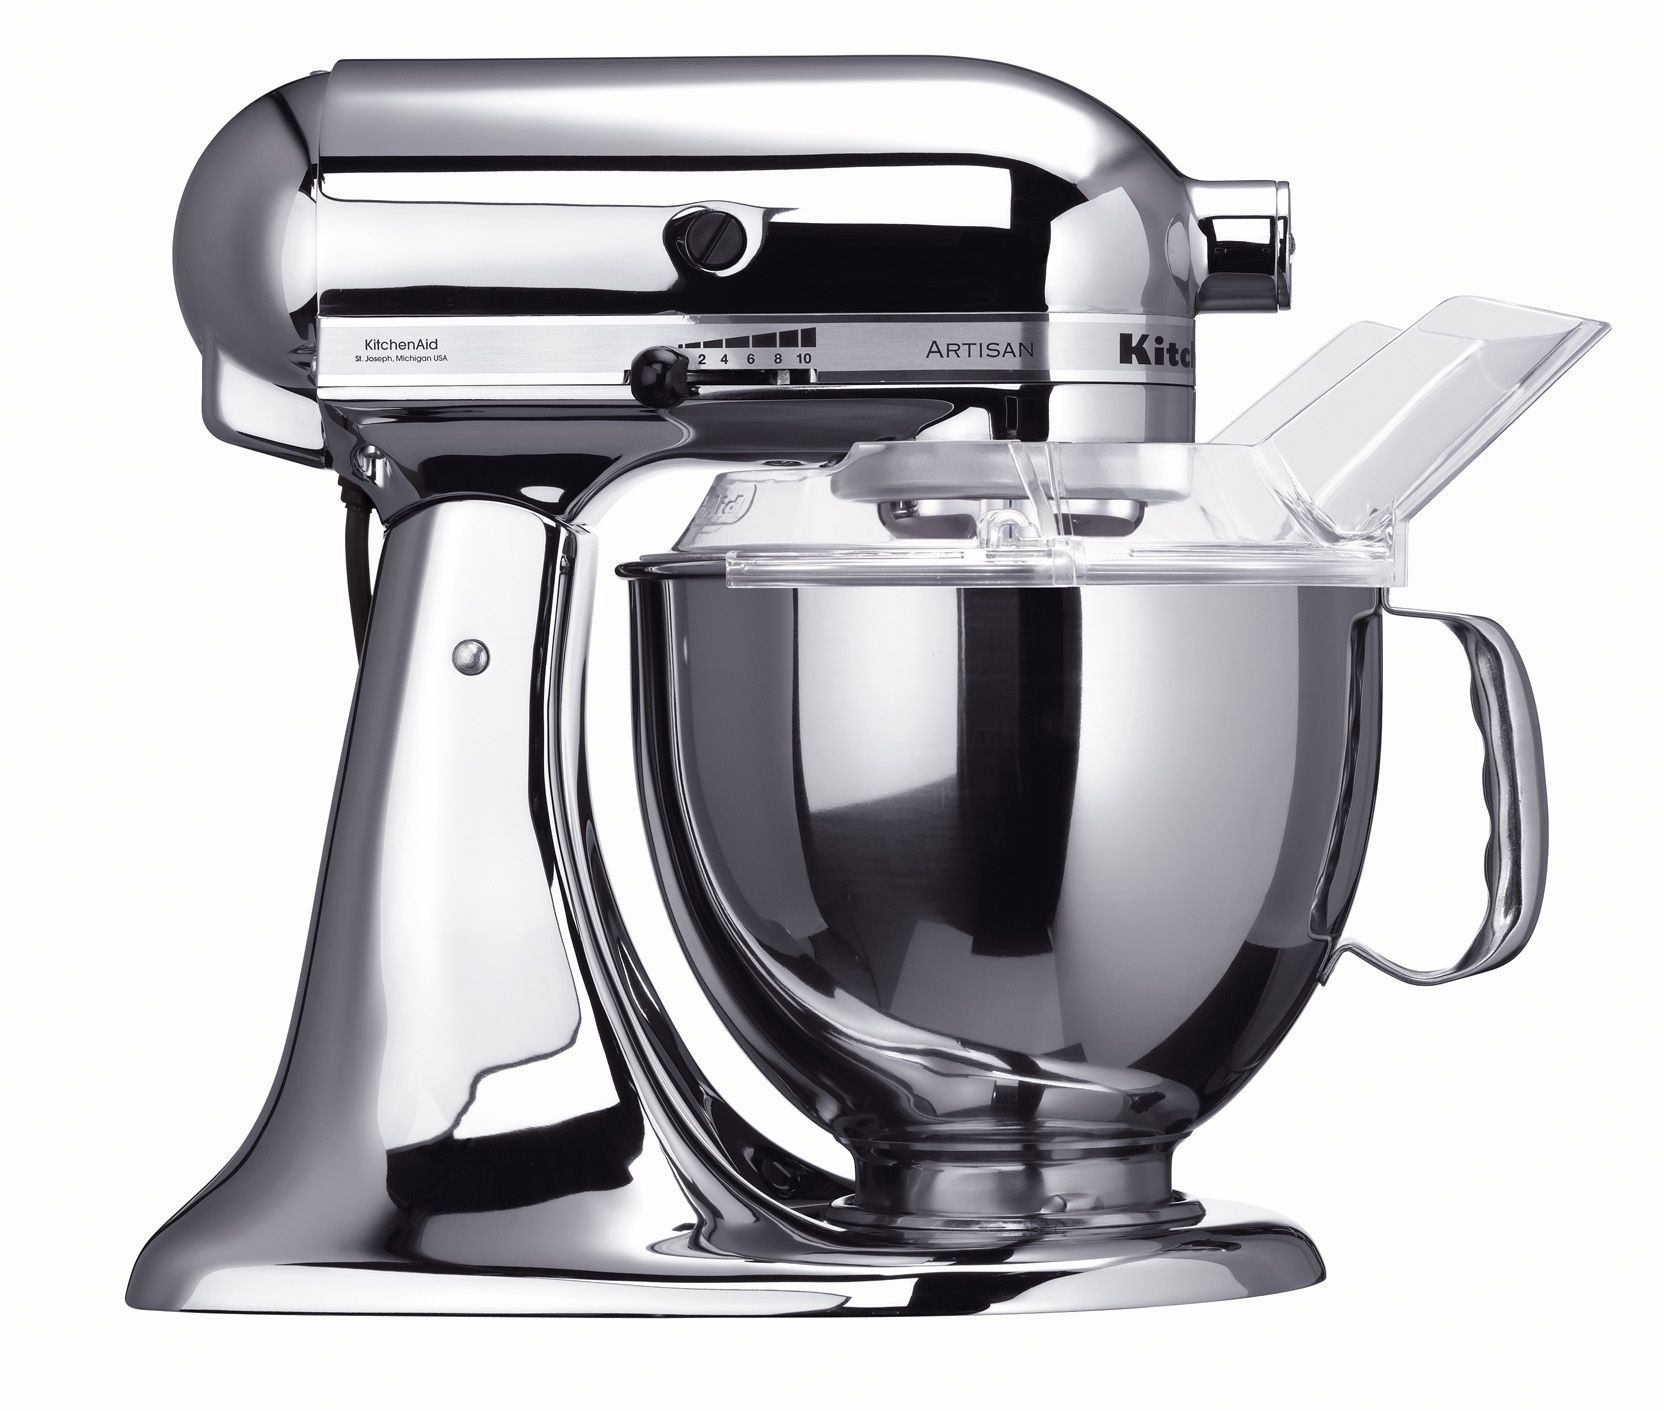 kitchenaid chrome kitchenaid ksm152pscr custom metallic series 5 rh pinterest com